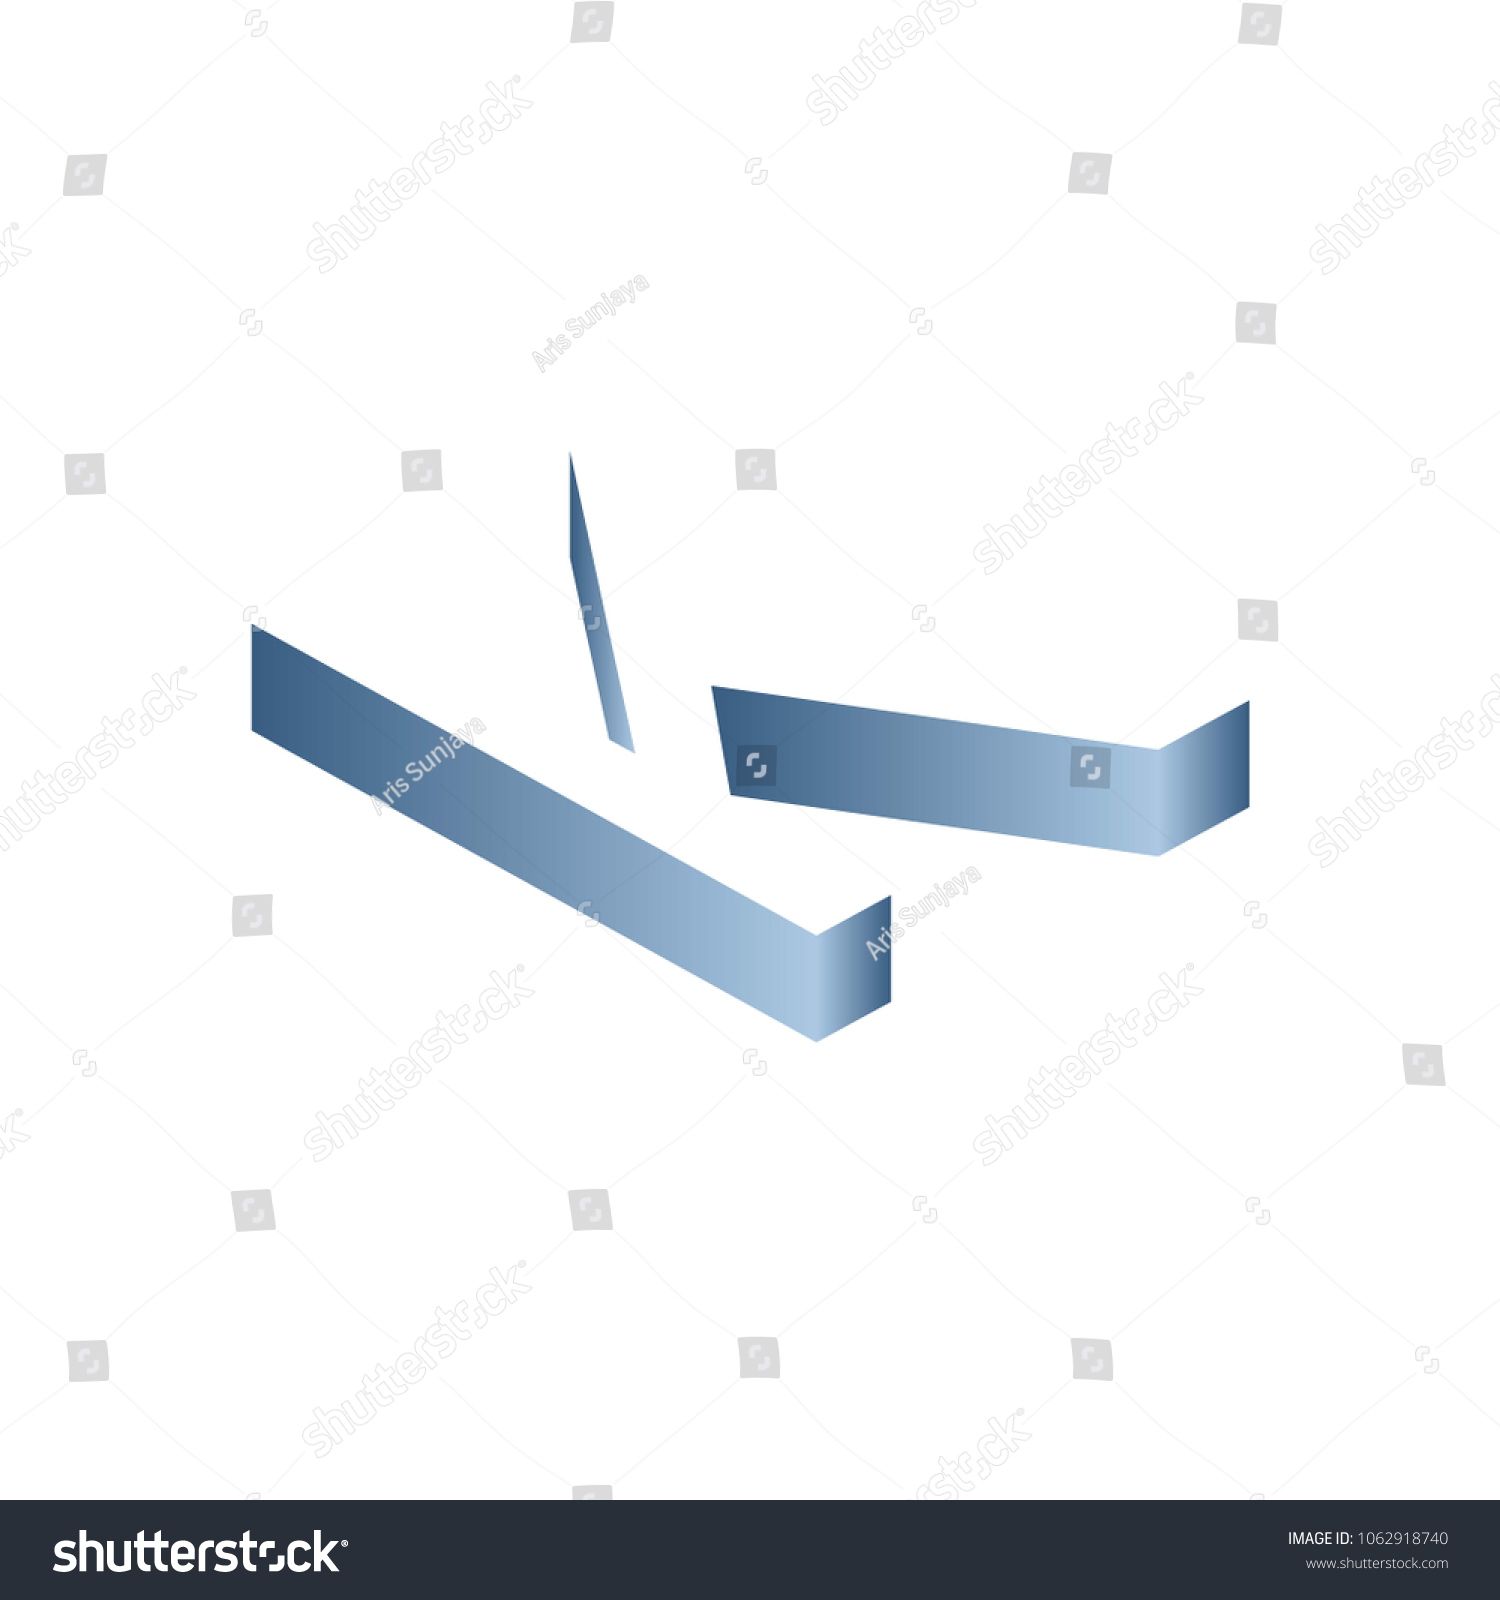 letter k block shadow logo with blue gradient colors